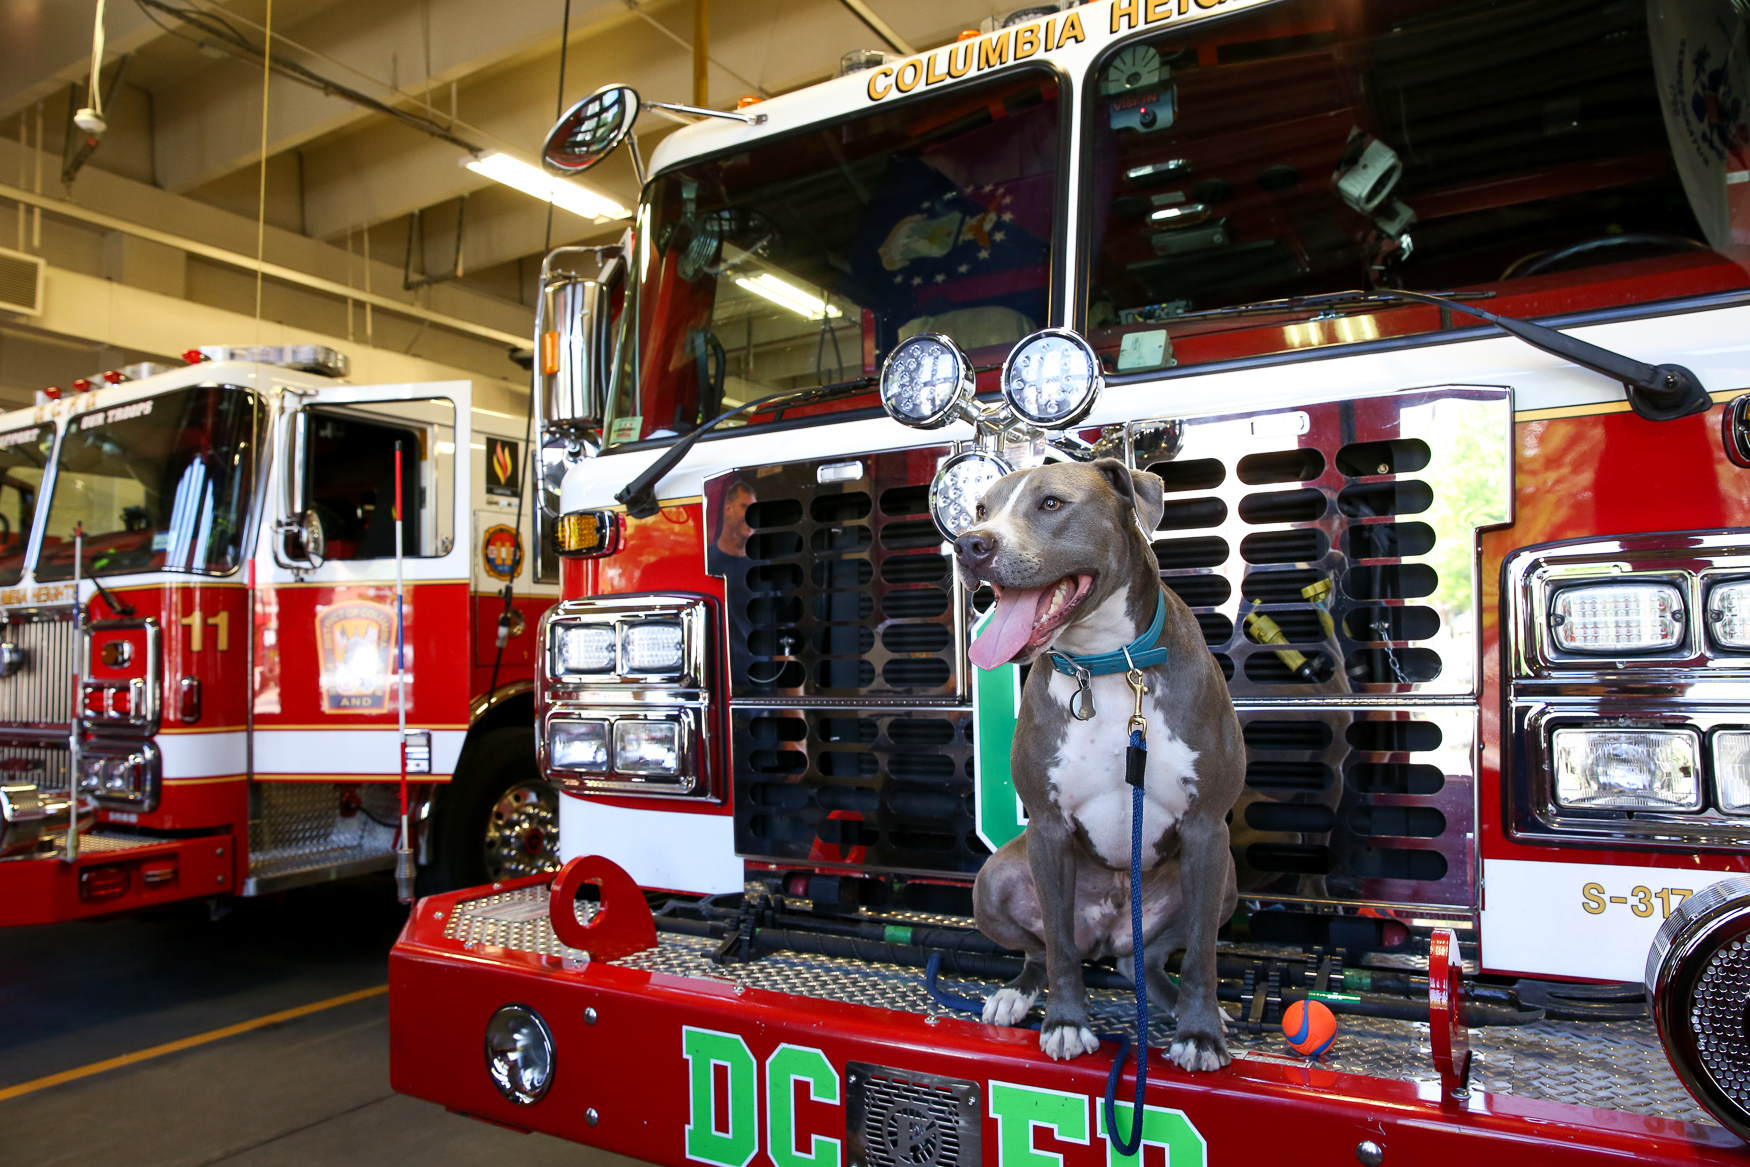 May 19-25 marks National EMS Week and firefighters and EMS workers are getting the chance to blow off a little steam and relax with some local dogs. D.C.-based organization PAL (People Animals Love) is bringing dogs to fire houses around The District this week. PAL also brings local dogs to hospitals, classrooms, prisons and other places where the pups can bring some comfort. (Amanda Andrade-Rhoades/DC Refined)